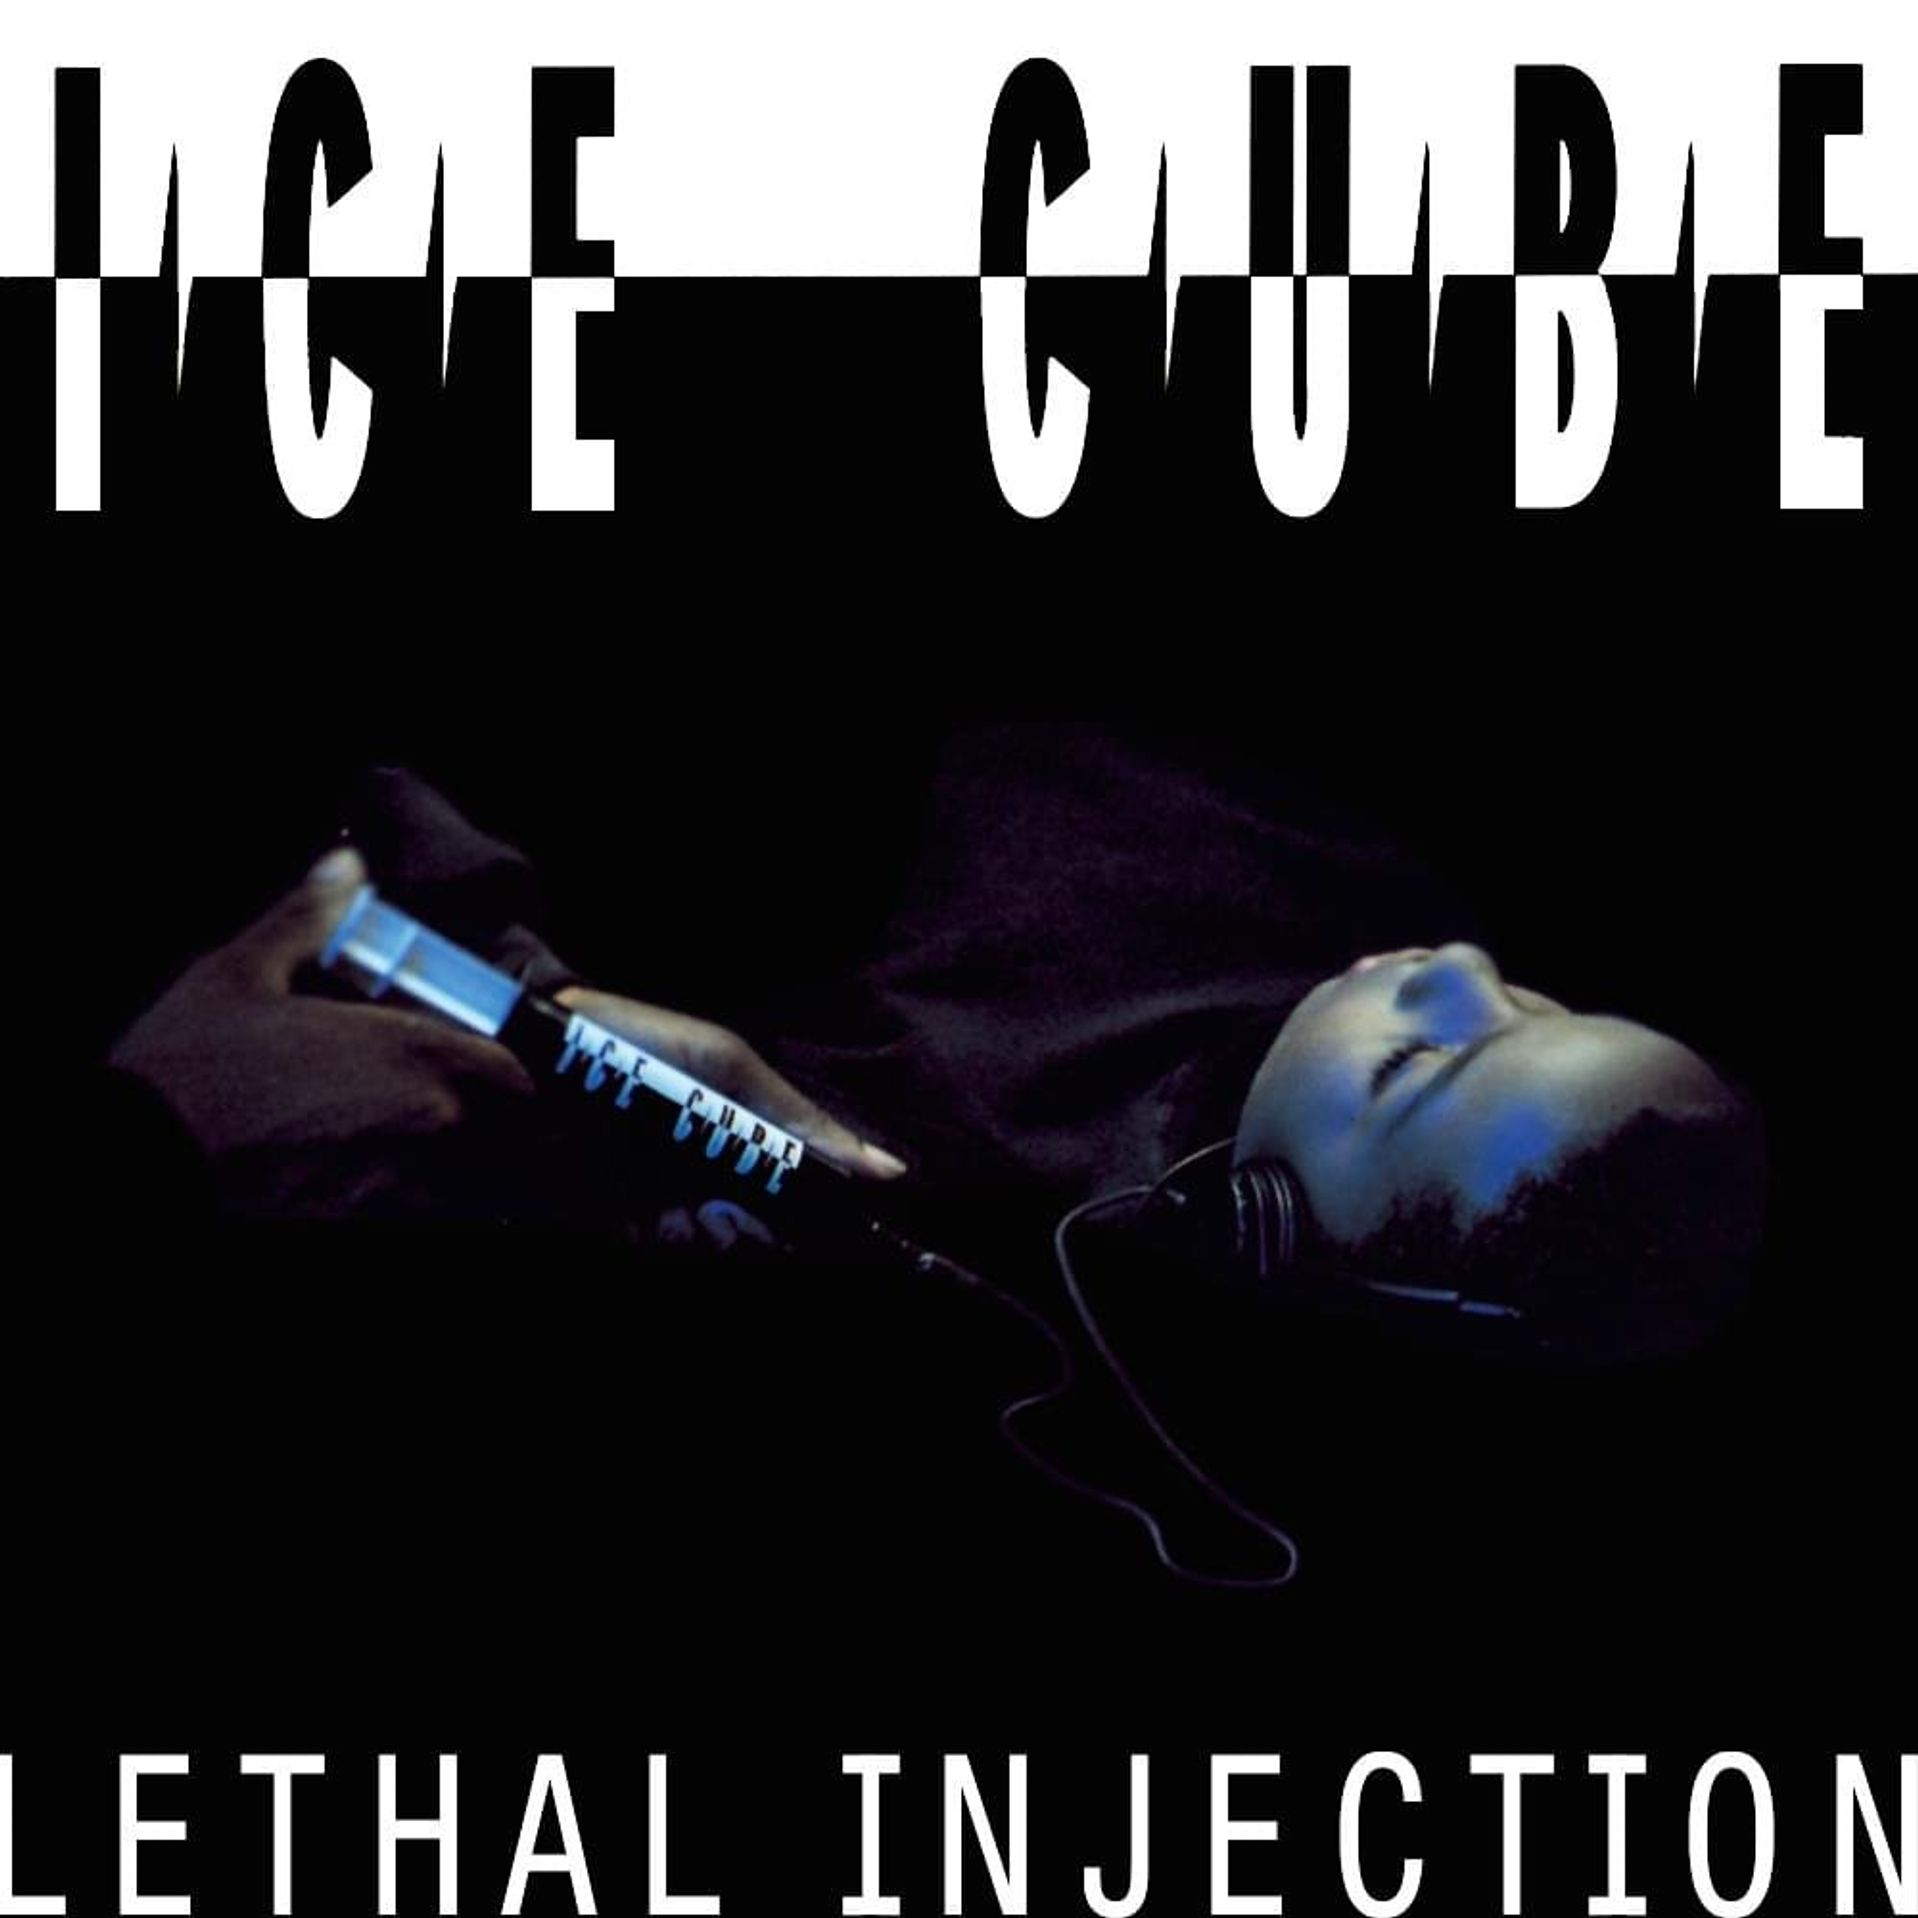 Album Title: Lethal Injection by: Ice Cube